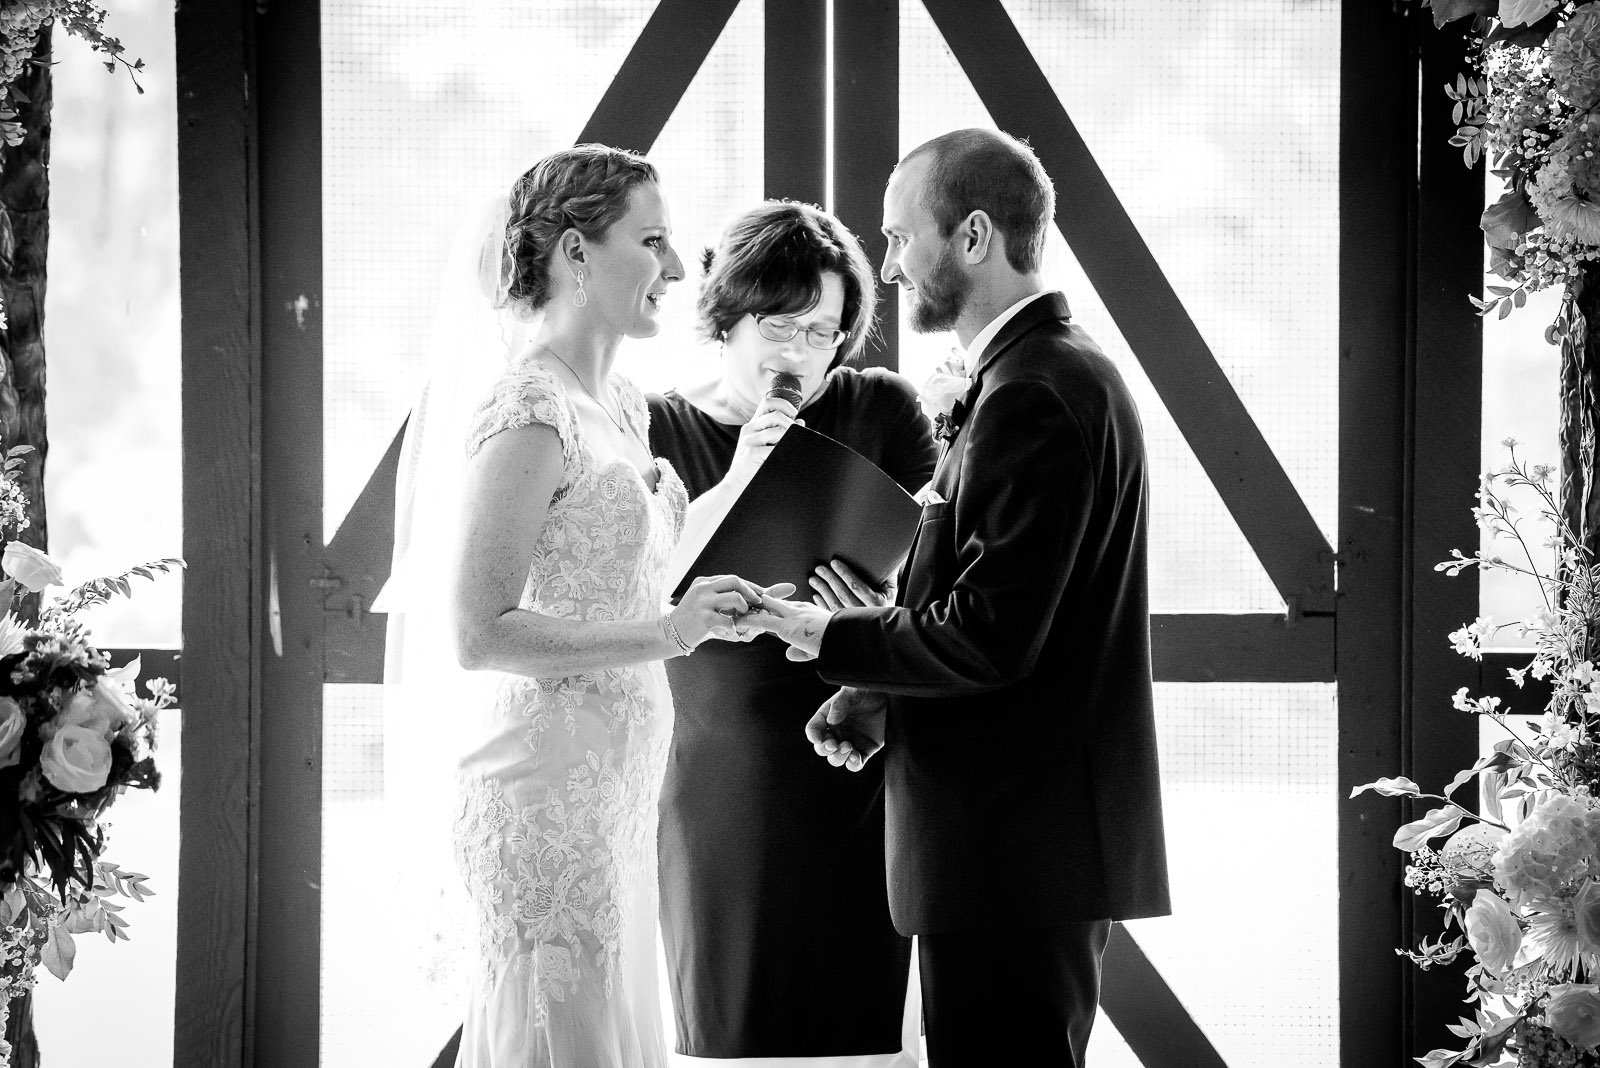 eric_and_christy_photographers_blog_wedding_katieandy-38